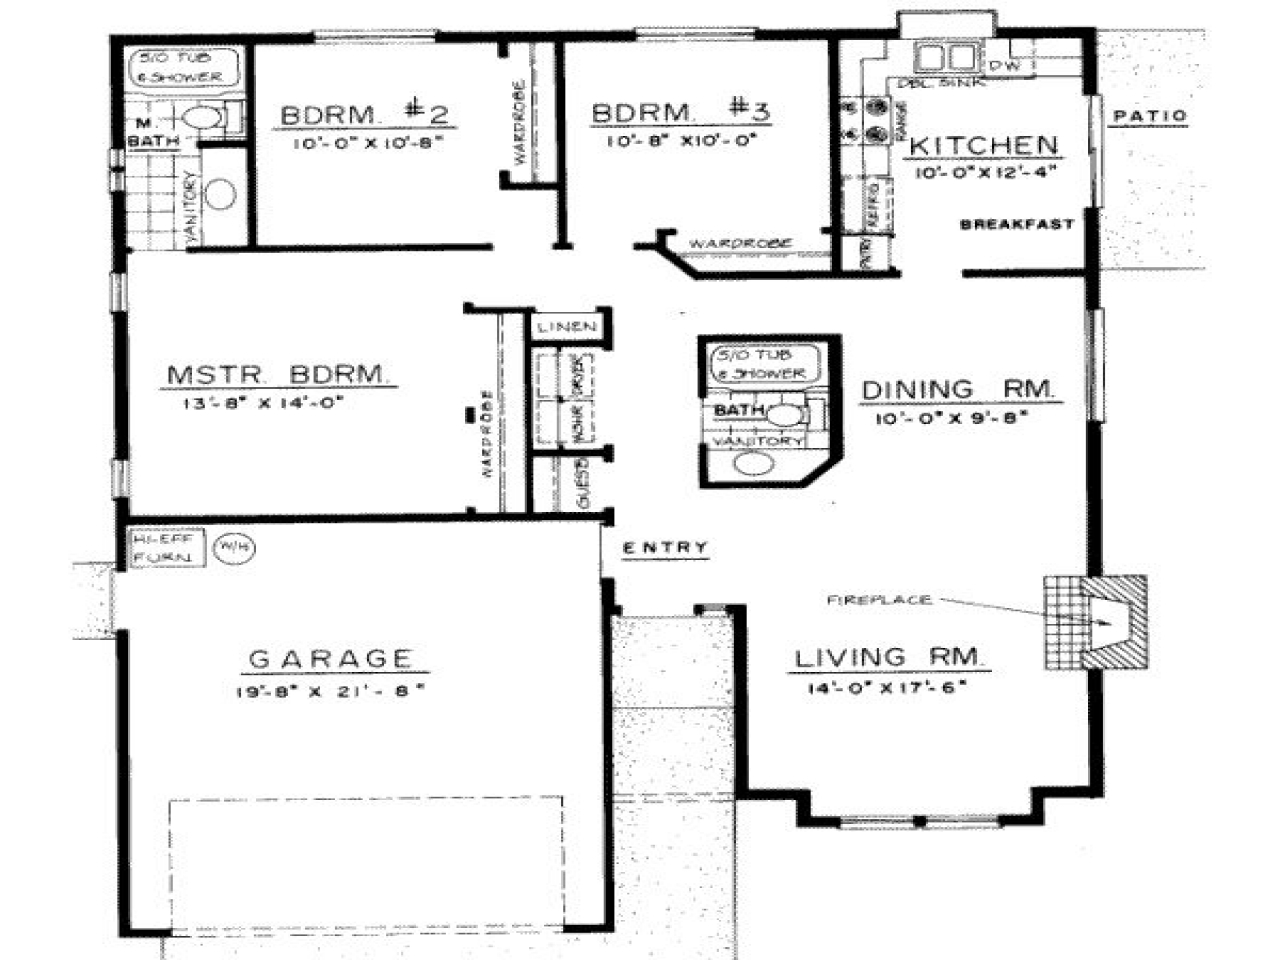 8 X 20 Tiny House Floor Plans as well Fbe38a6cedc537a9 3 Bedroom Bungalow Floor Plans 3 Bedroom Bungalow Design Philippines in addition 67918cb3f7f96429 Tiny House Floor Plans 14 X 18 Tiny Houses On Wheels besides 746 Sq Ft Ernesti Cottage together with 4144988535. on tumbleweed tiny house floor plans